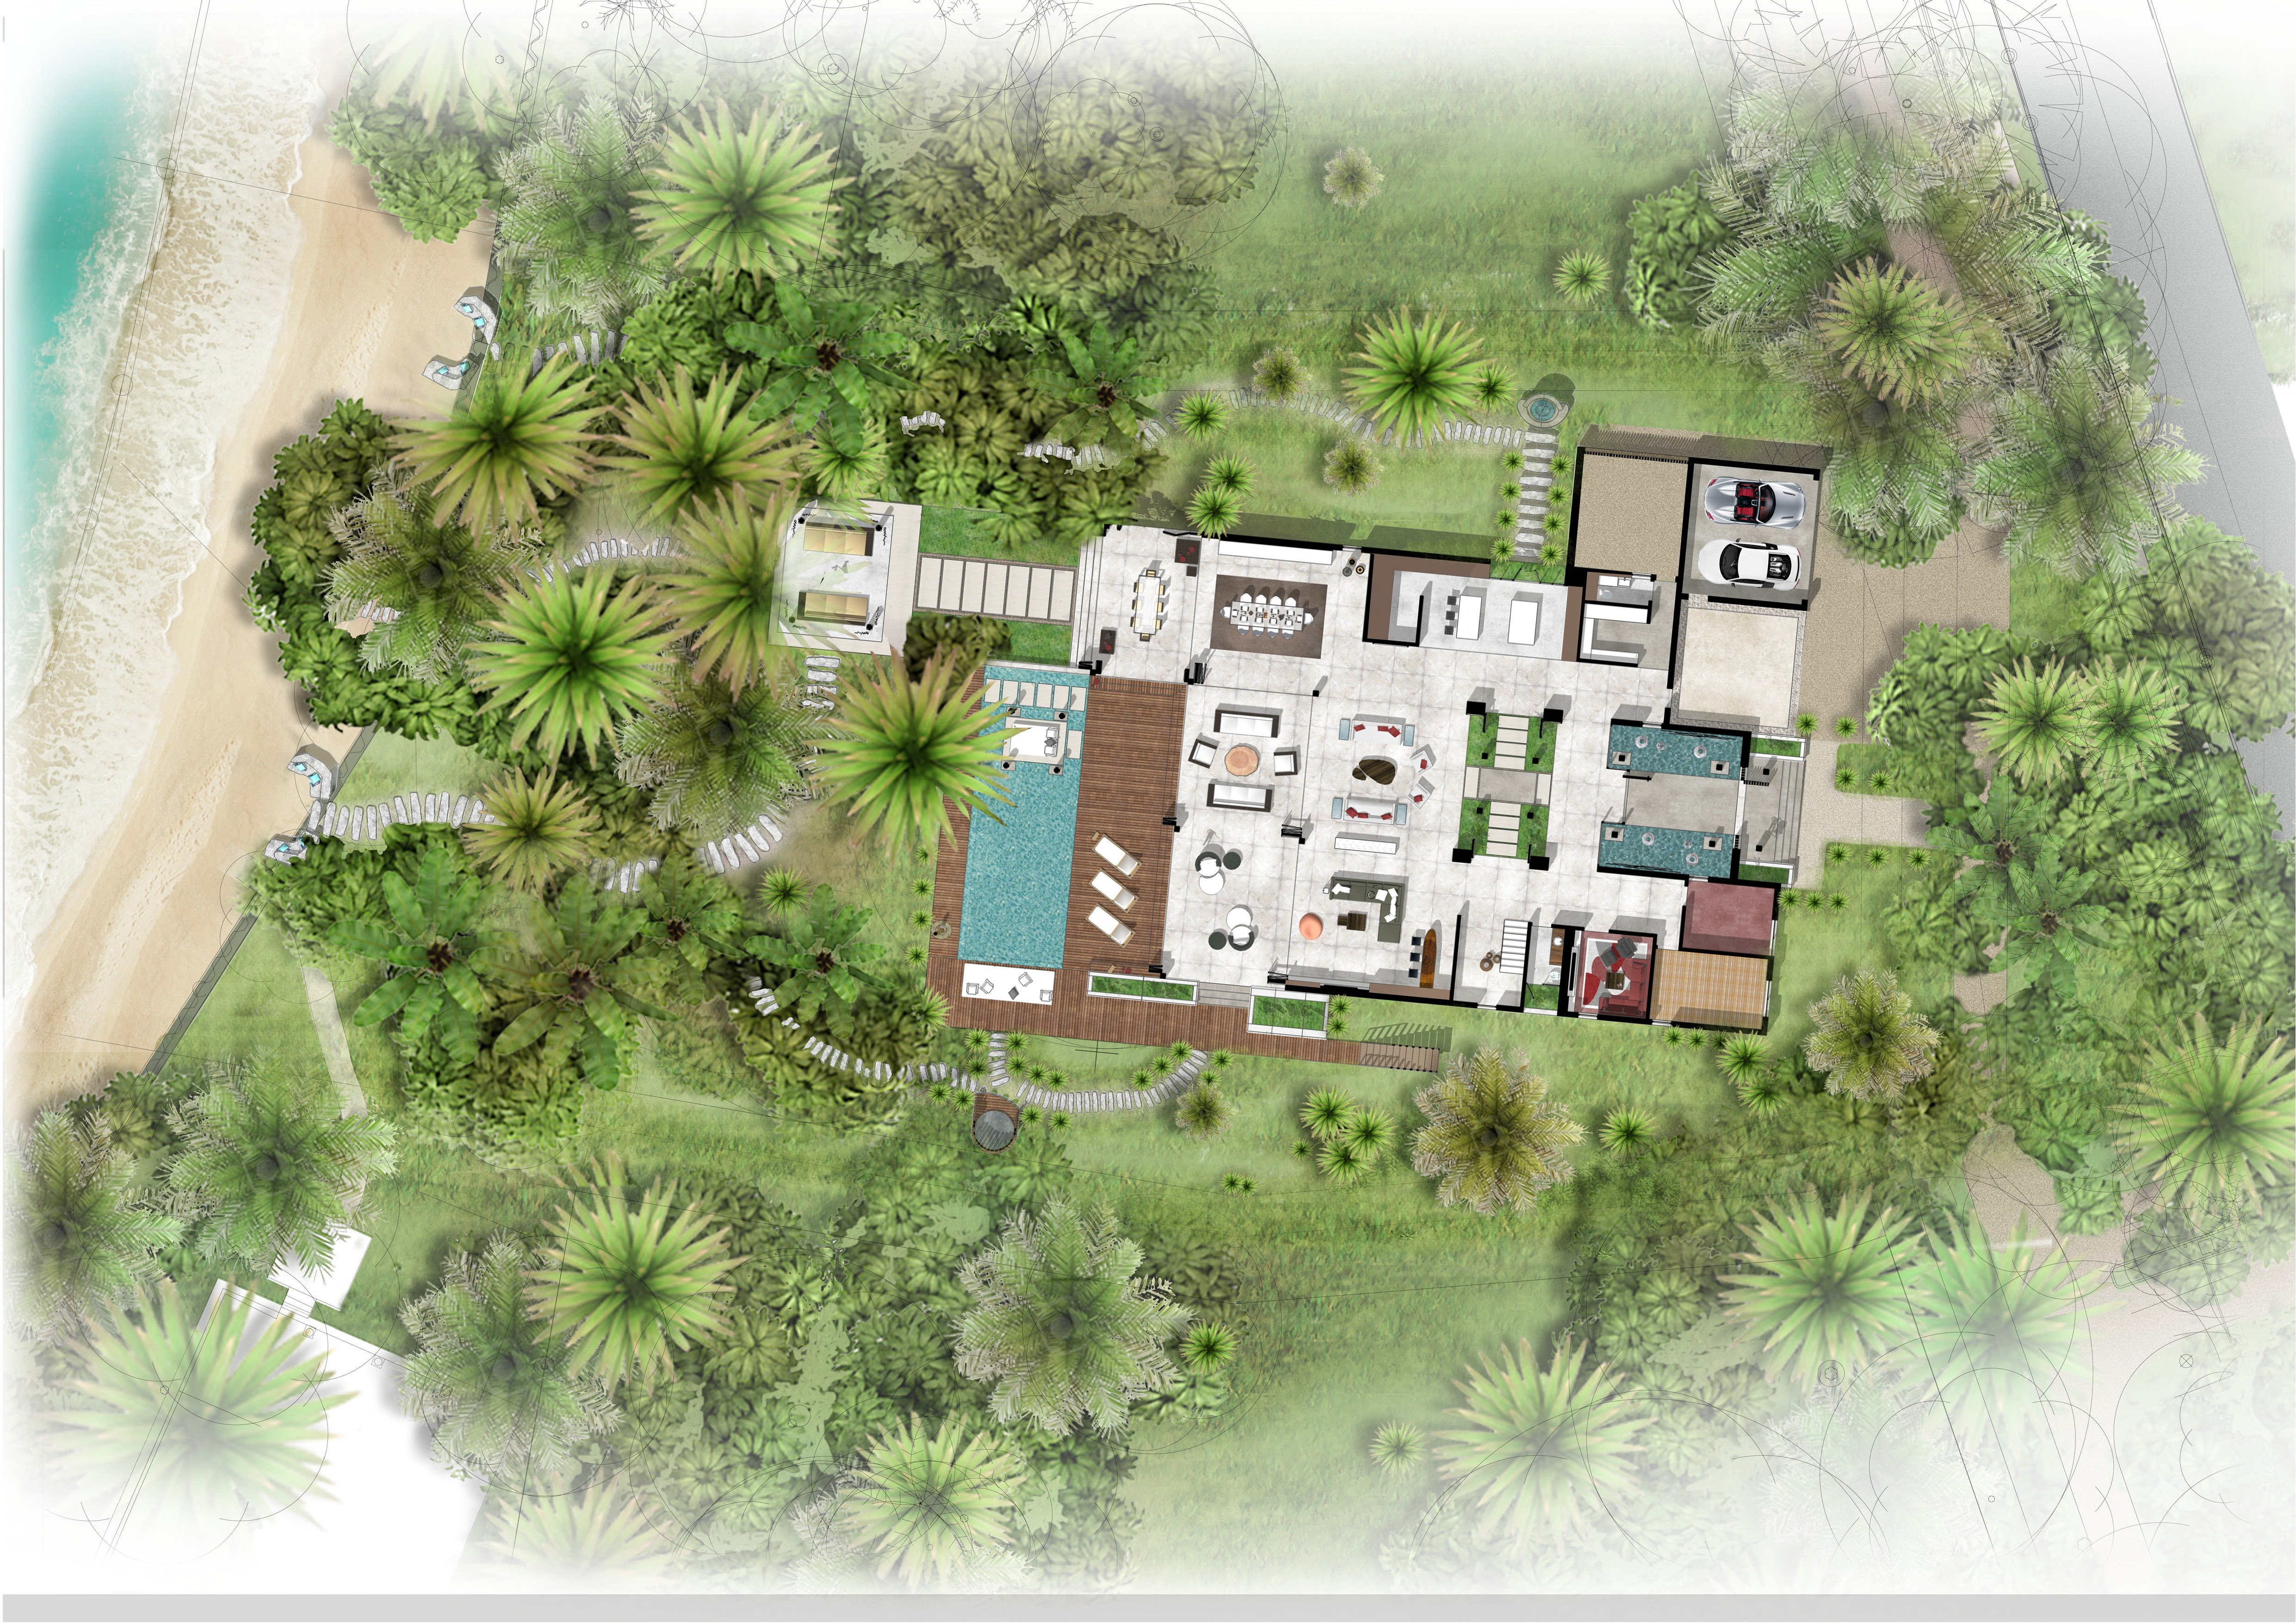 This 6 bedroom luxury modern villa, located on a private island in the Caribbean, combines two wings united by a grand glass entrance; one wing for sleeping and one for entertaining. The floorplan maximises views of the sea, whilst the external appearance relates to the rocky outcrop and allows it to nestle within the lush surroundings using local natural building material such as indigenous coral and timber. KSR also carried out a full interior design service. The entertainment area includes a large open plan space with floor to ceiling windows framing panoramic views. The bedroom area has that are angled windows to add privacy from the main house and provide uninterrupted views. Projecting soffits and a combination of stone, timber and concrete keep the house cool in the hot climate and also achieve the contemporary style the client desired.